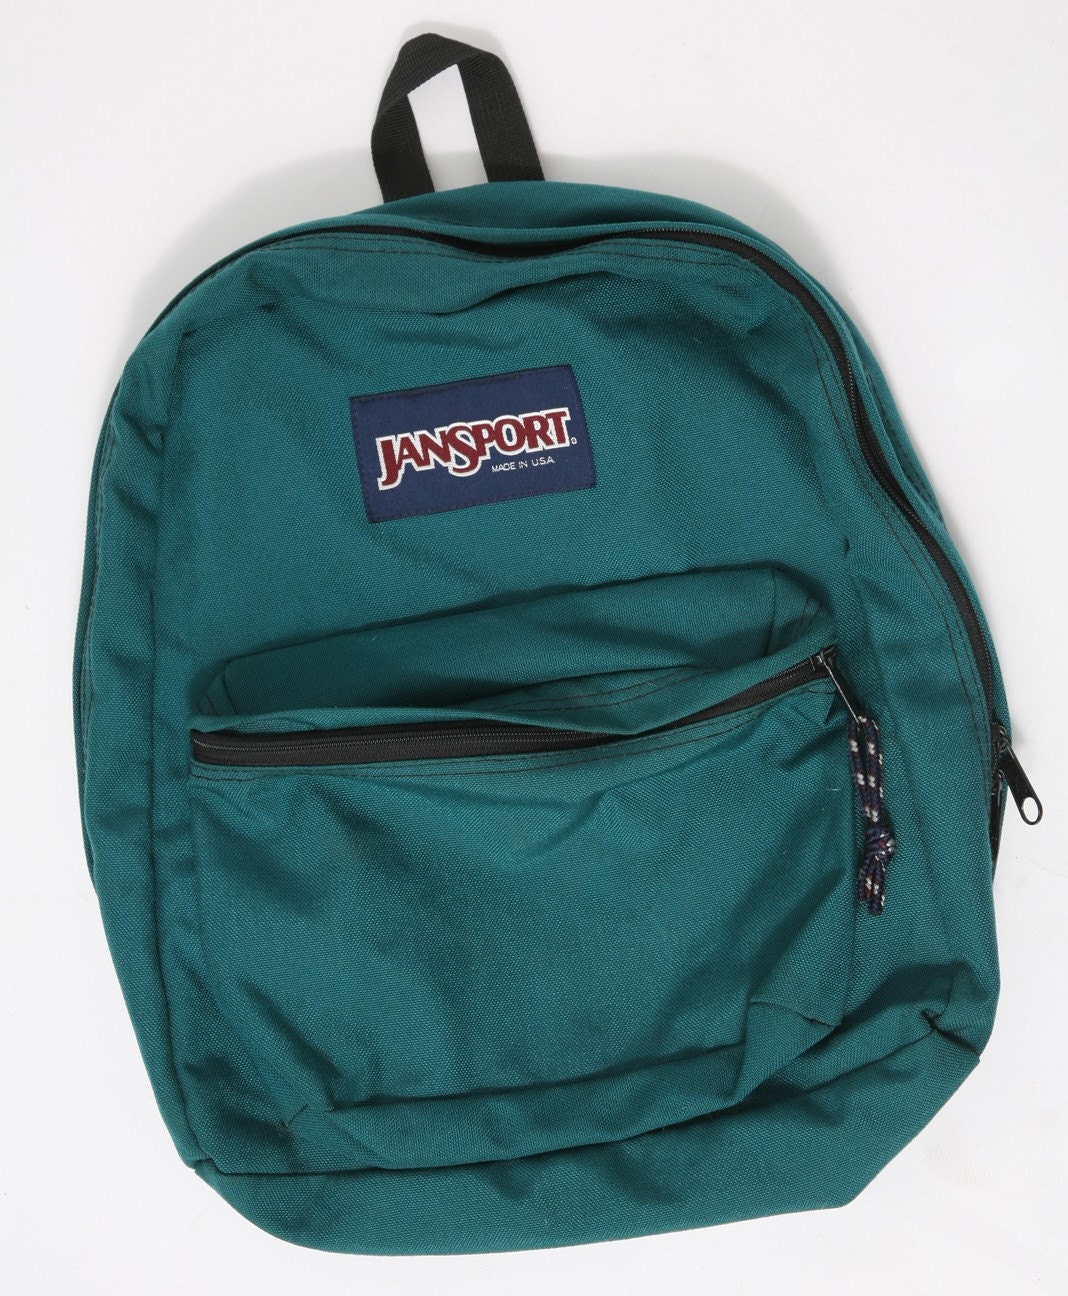 Jansport Backpacks For School - Crazy Backpacks